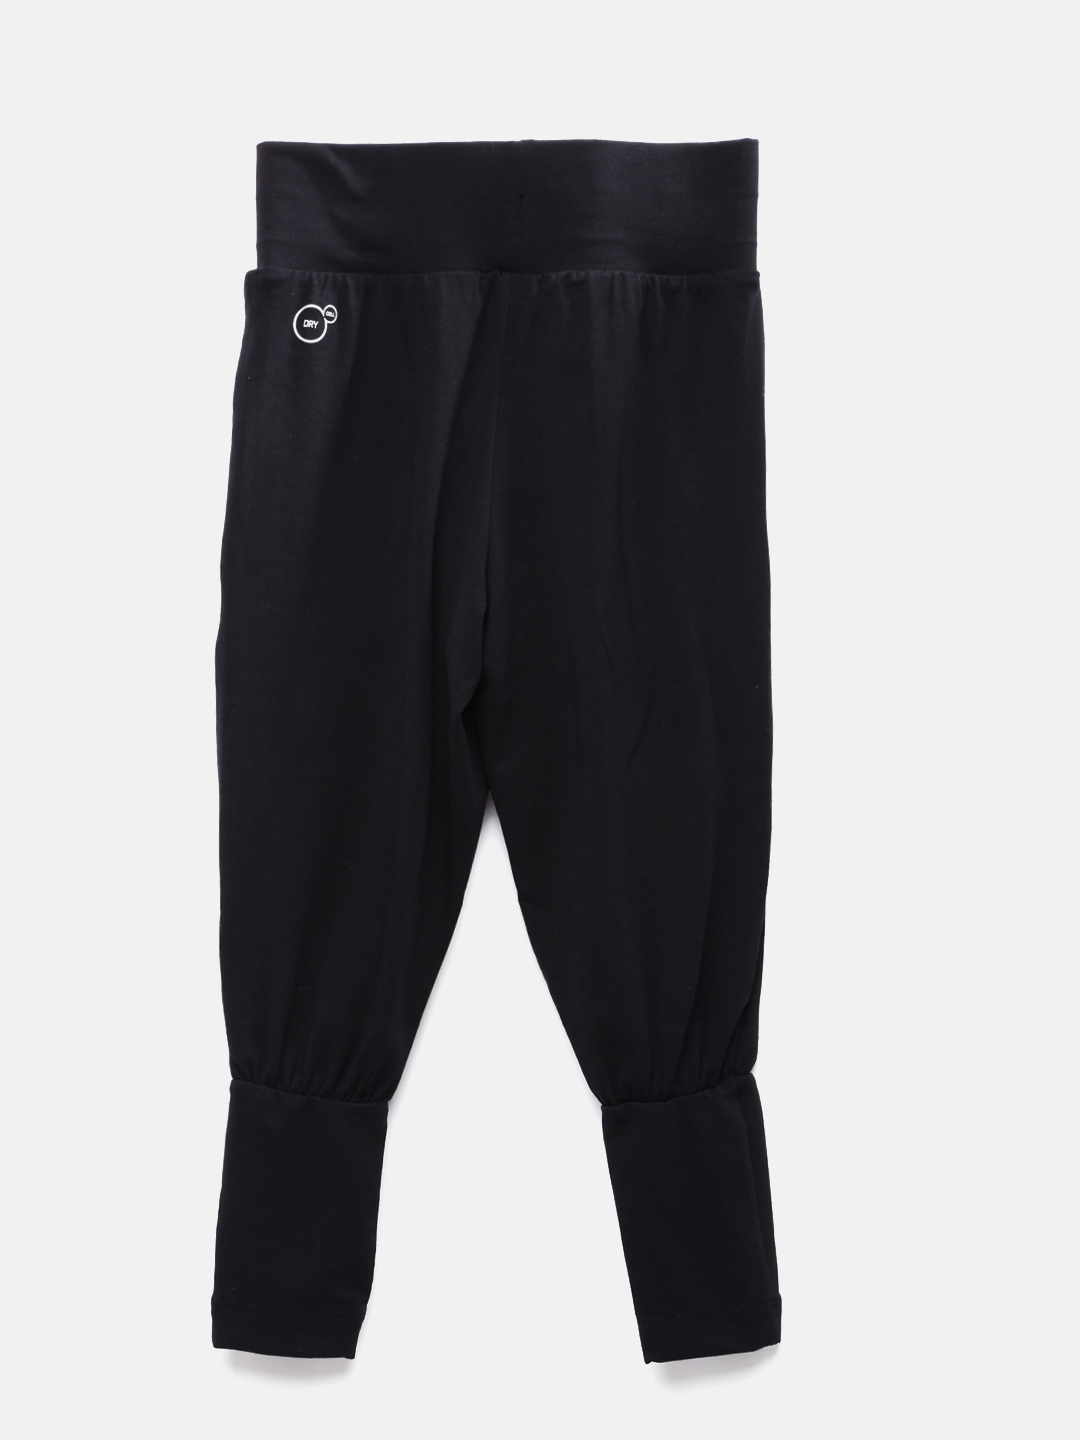 3afd50e80a10 Buy Puma Girls Black Softsport Jersey Track Pants - Track Pants for ...